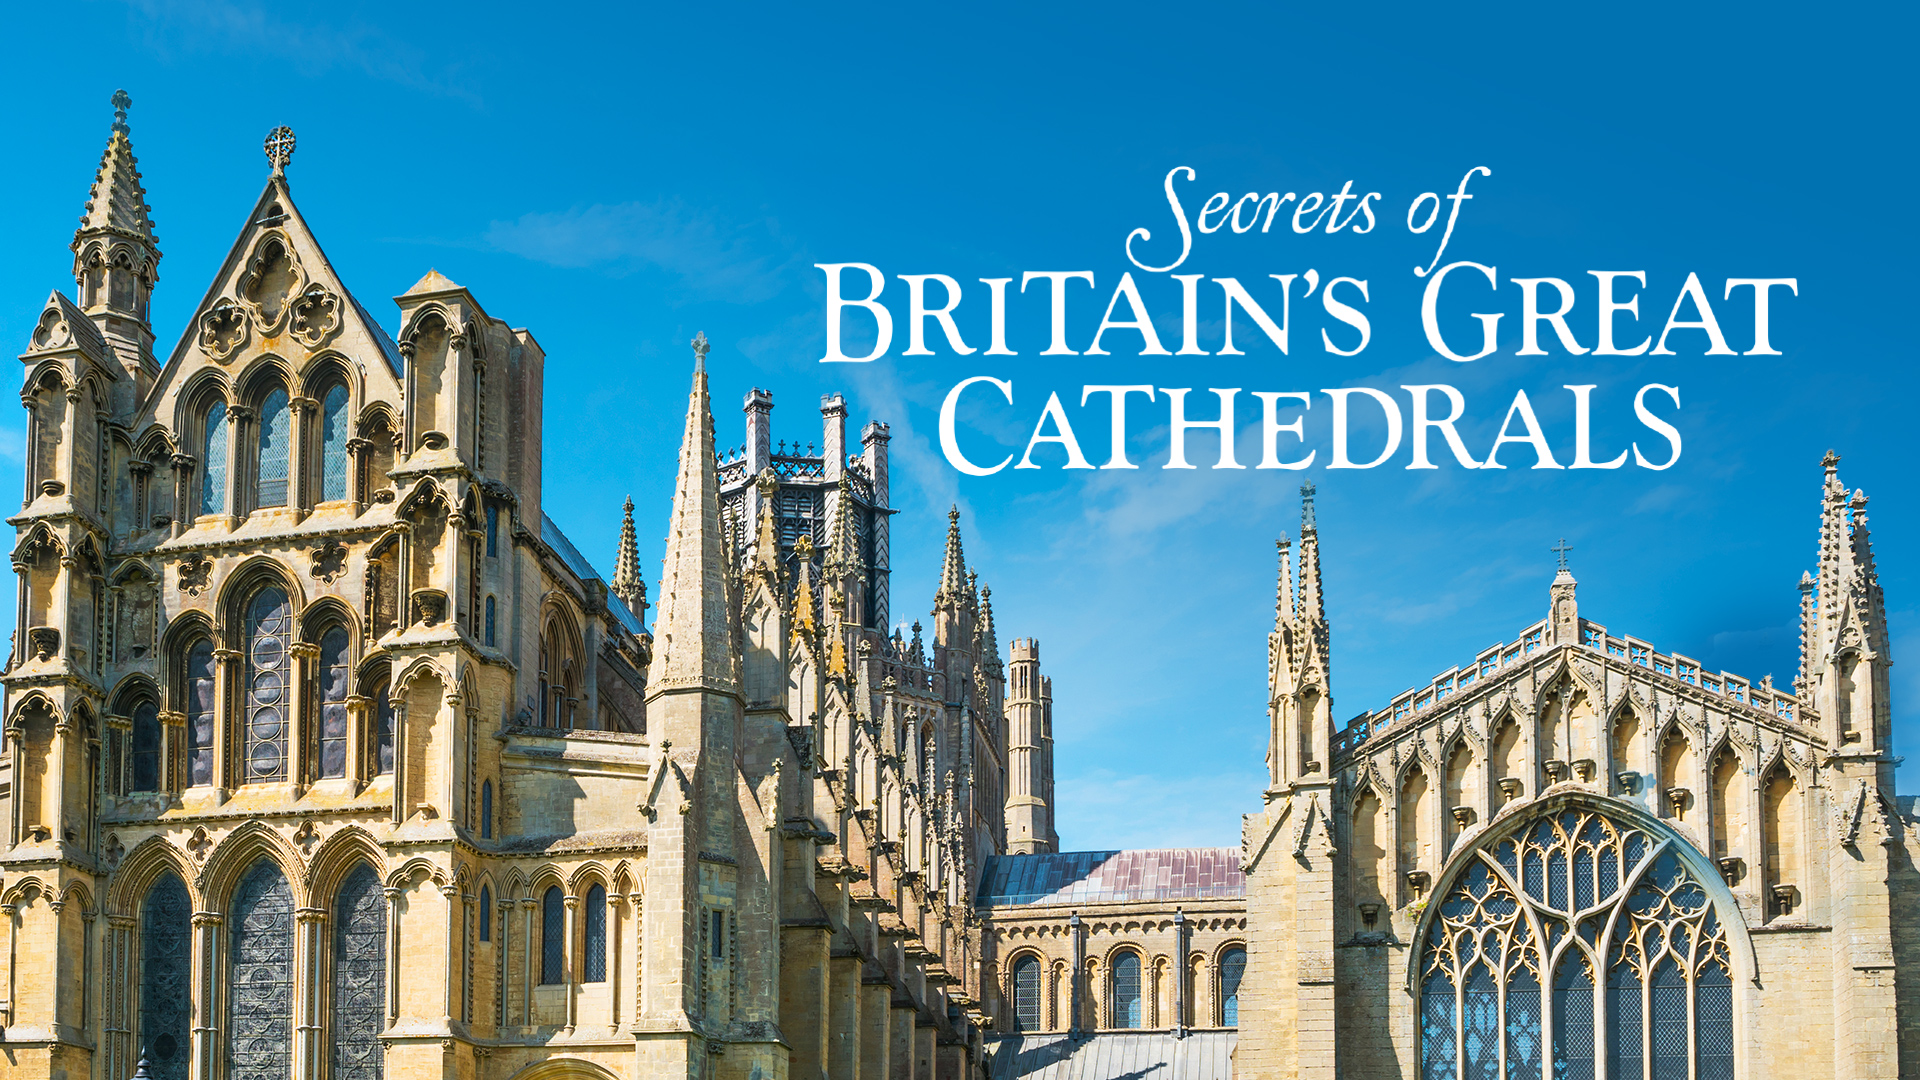 Ely Cathedral, Peterborough Cathedral & King's College Cambridge